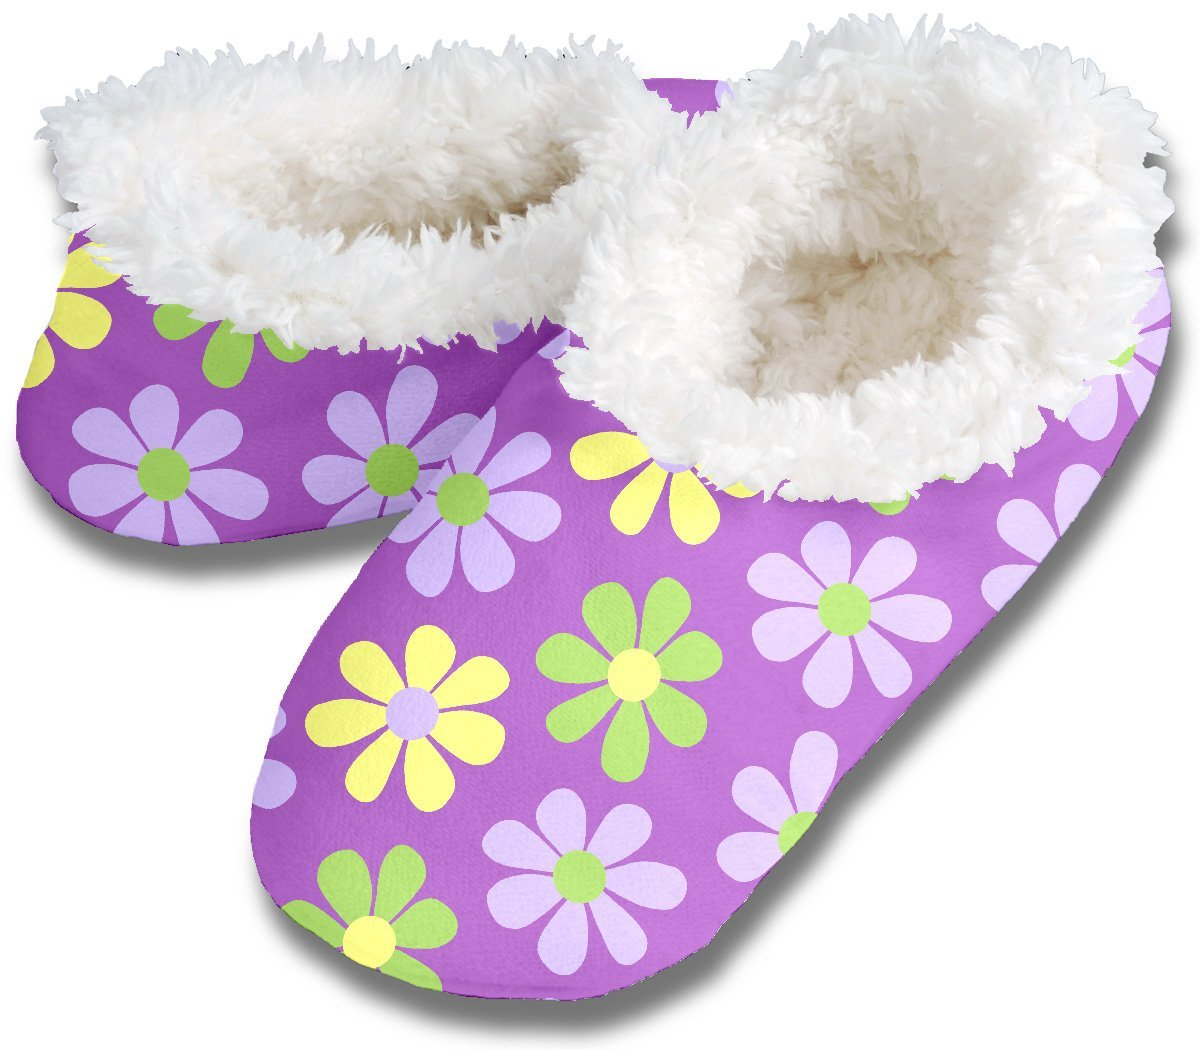 Snoozie Slippers Snoozies Daisy Chain Footies